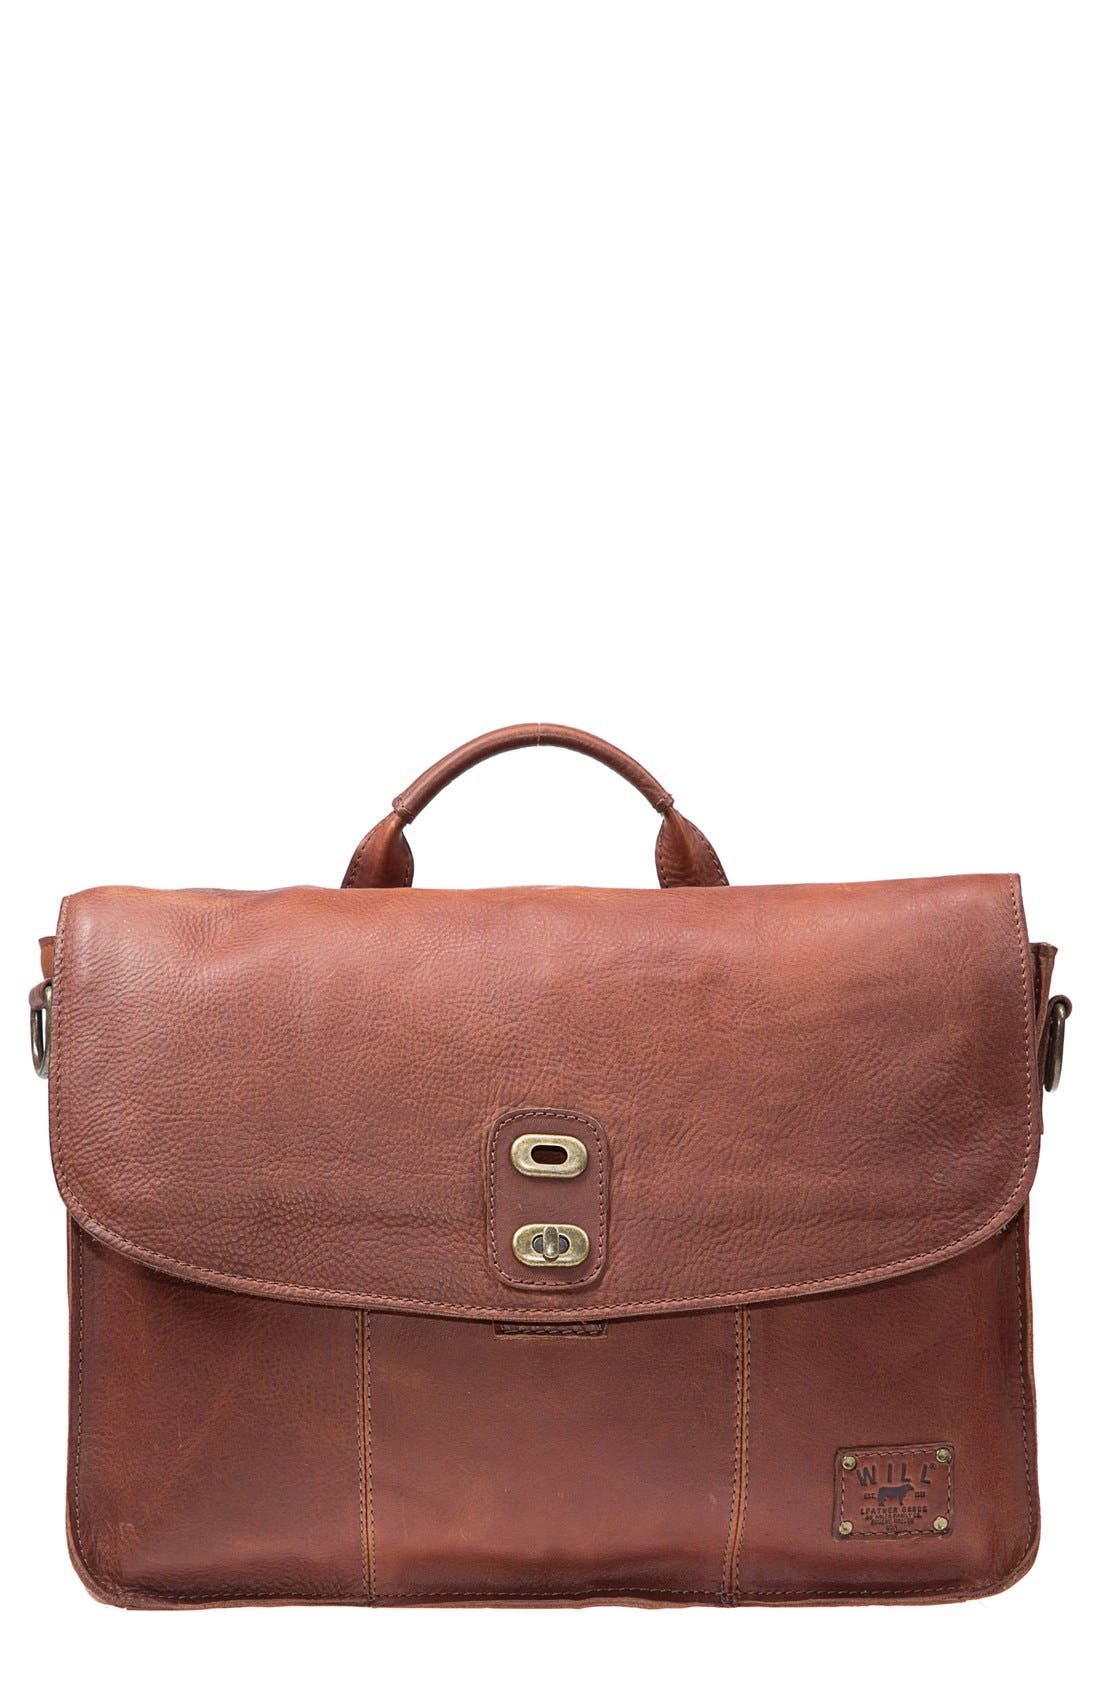 'Kent' Messenger Bag,                         Main,                         color, 231